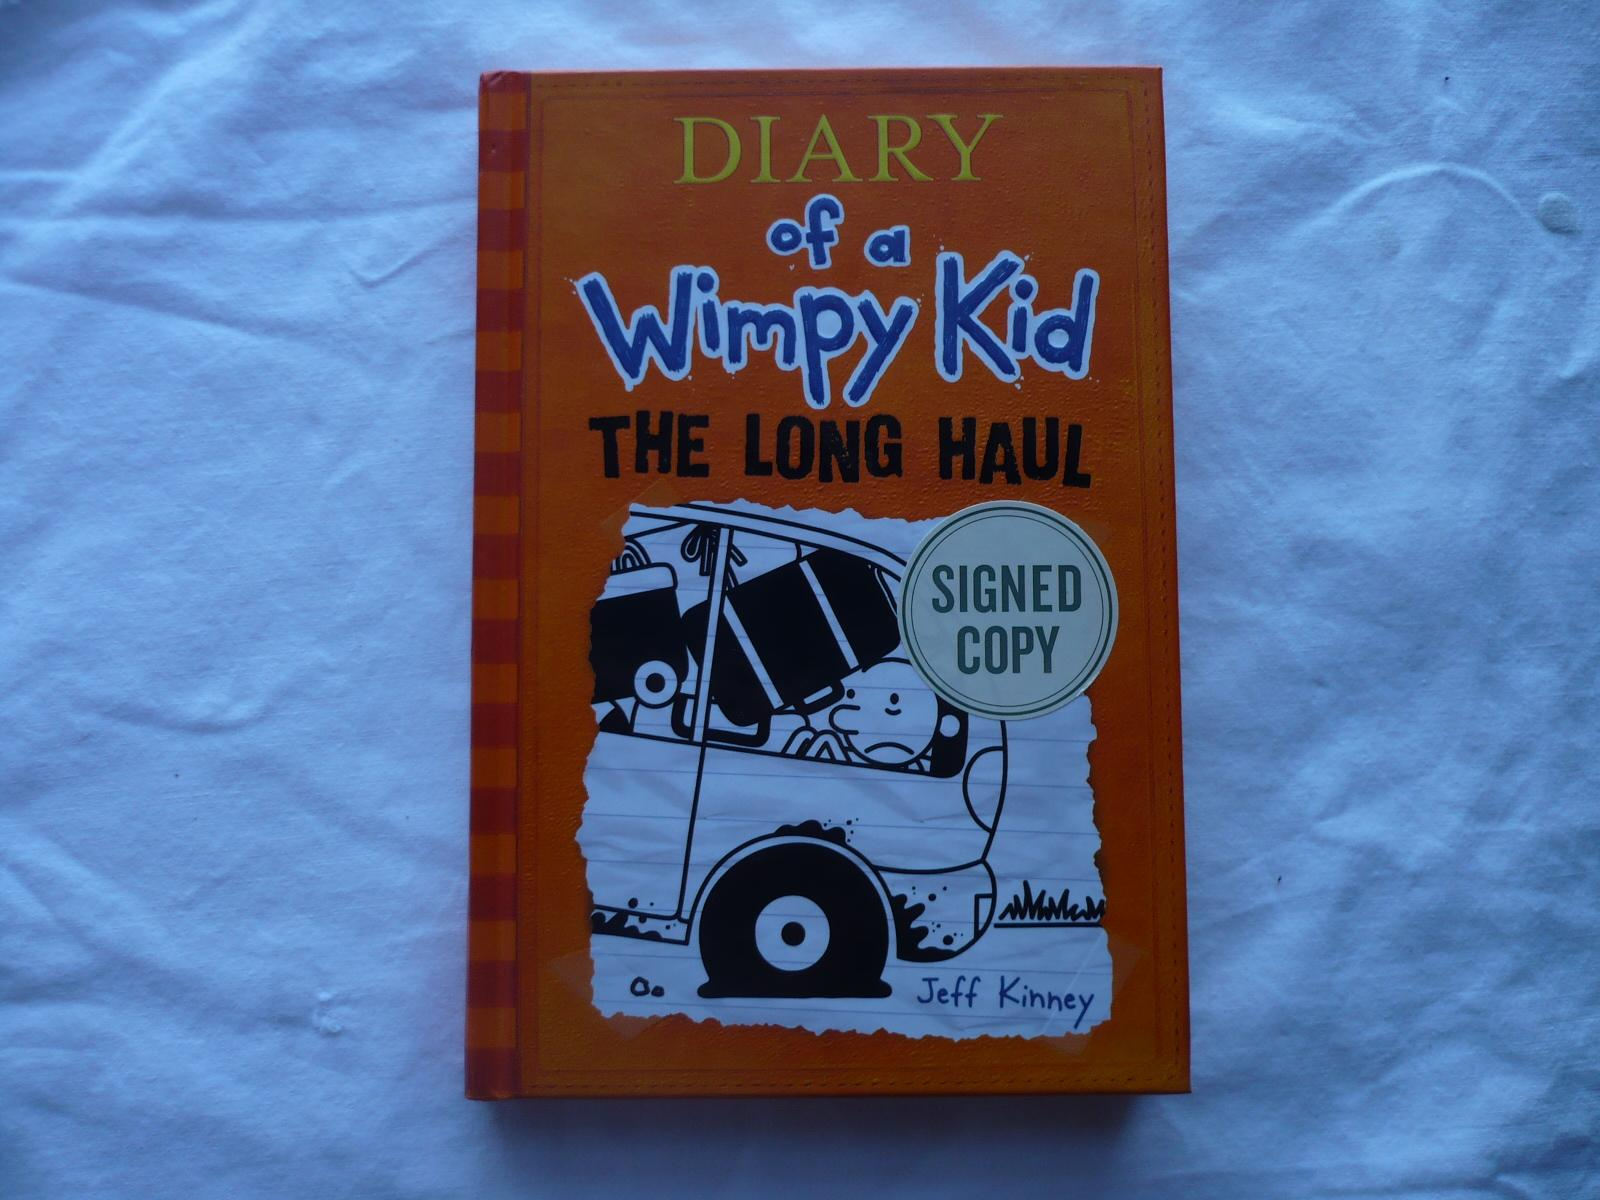 Diary Of A Wimpy Kid The Long Haul By Jeff Kinney Very Good Hardcover 2014 1st Edition Signed By Author S Randy Berry